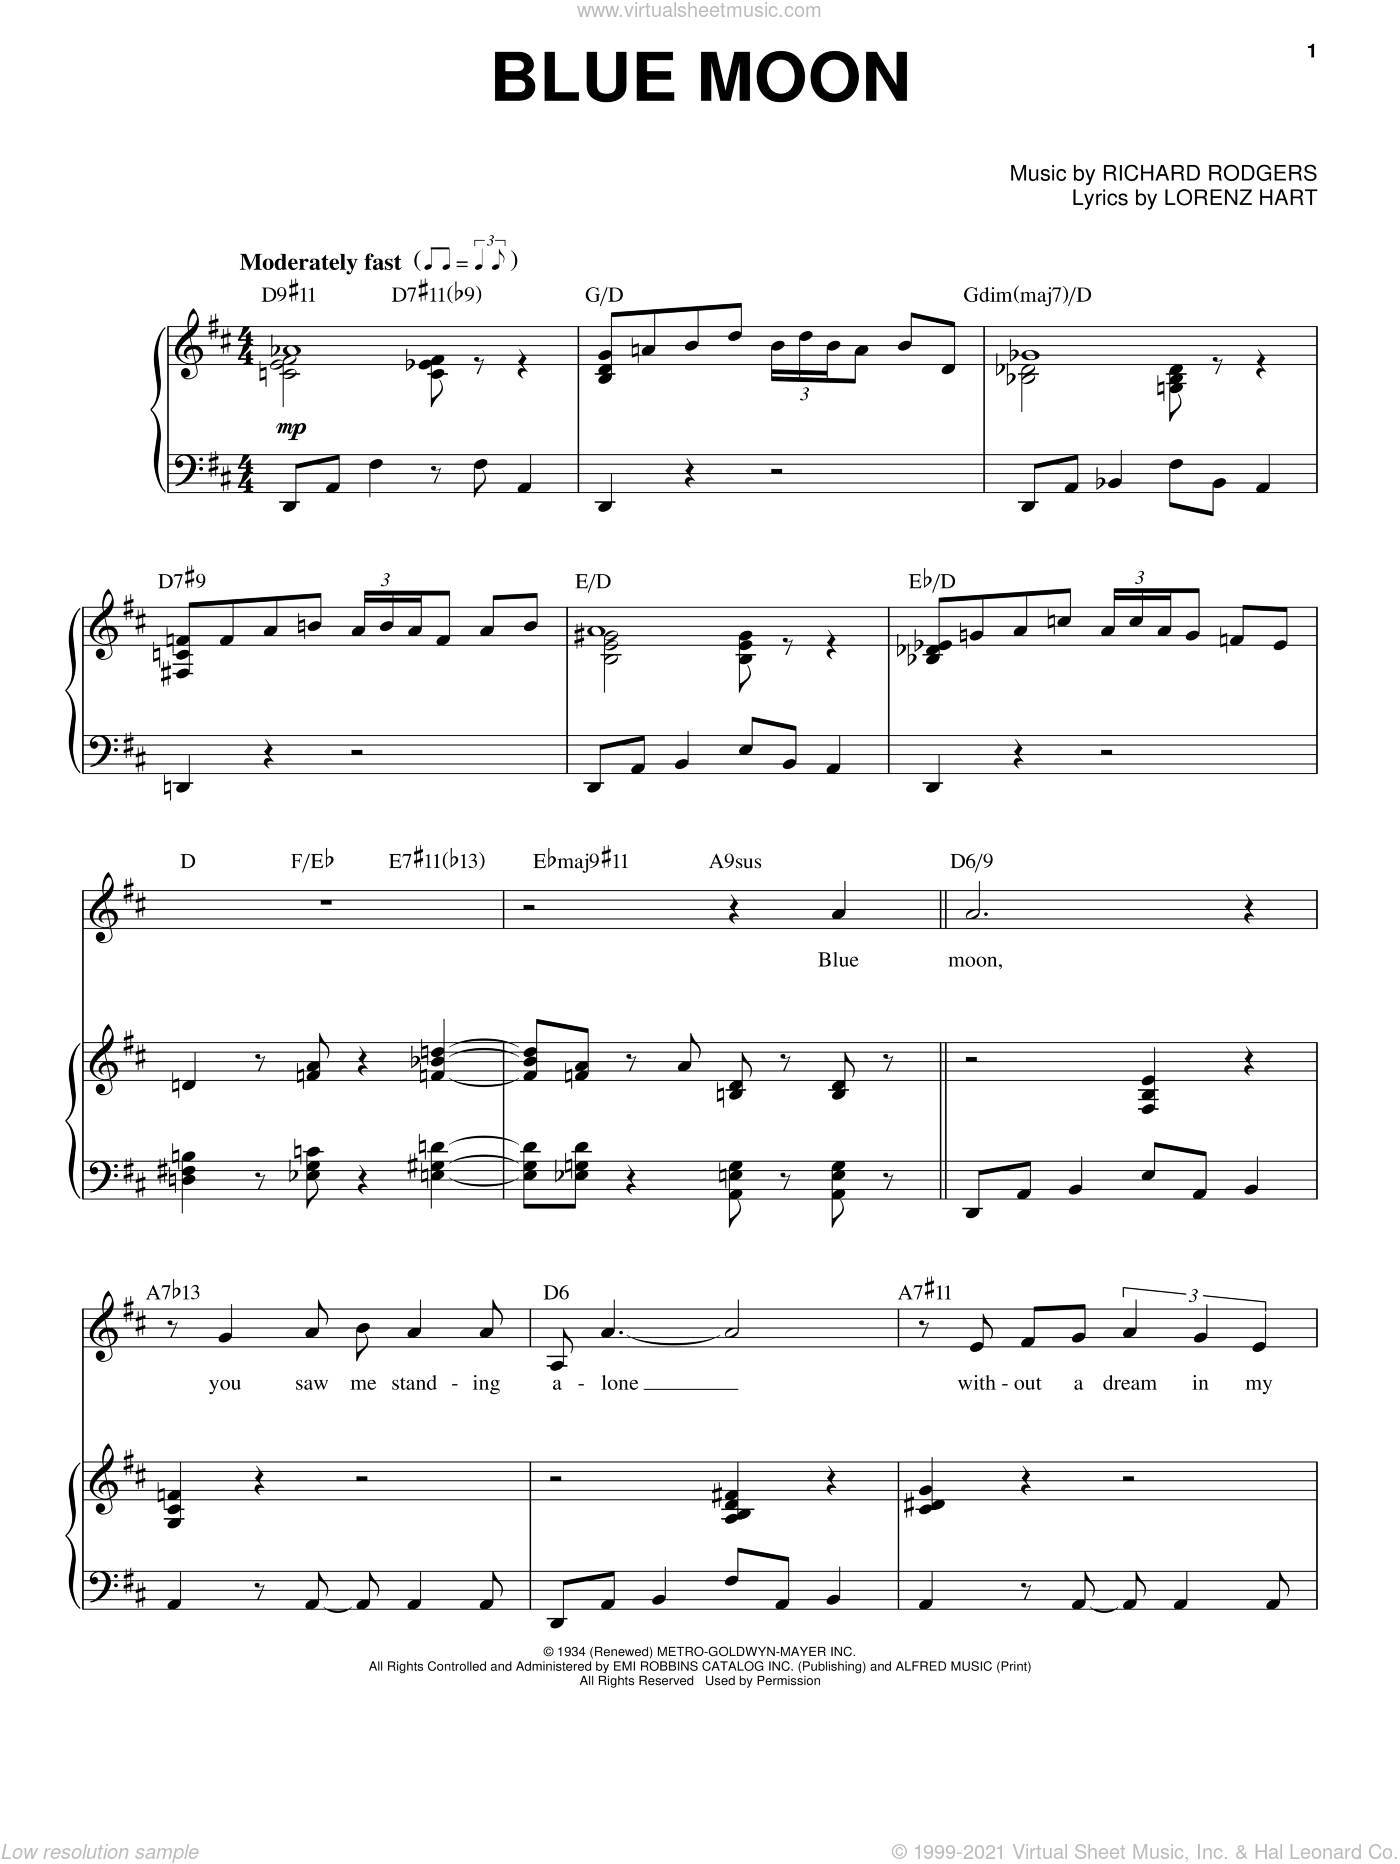 sinatra blue moon sheet music for voice and piano pdf. Black Bedroom Furniture Sets. Home Design Ideas